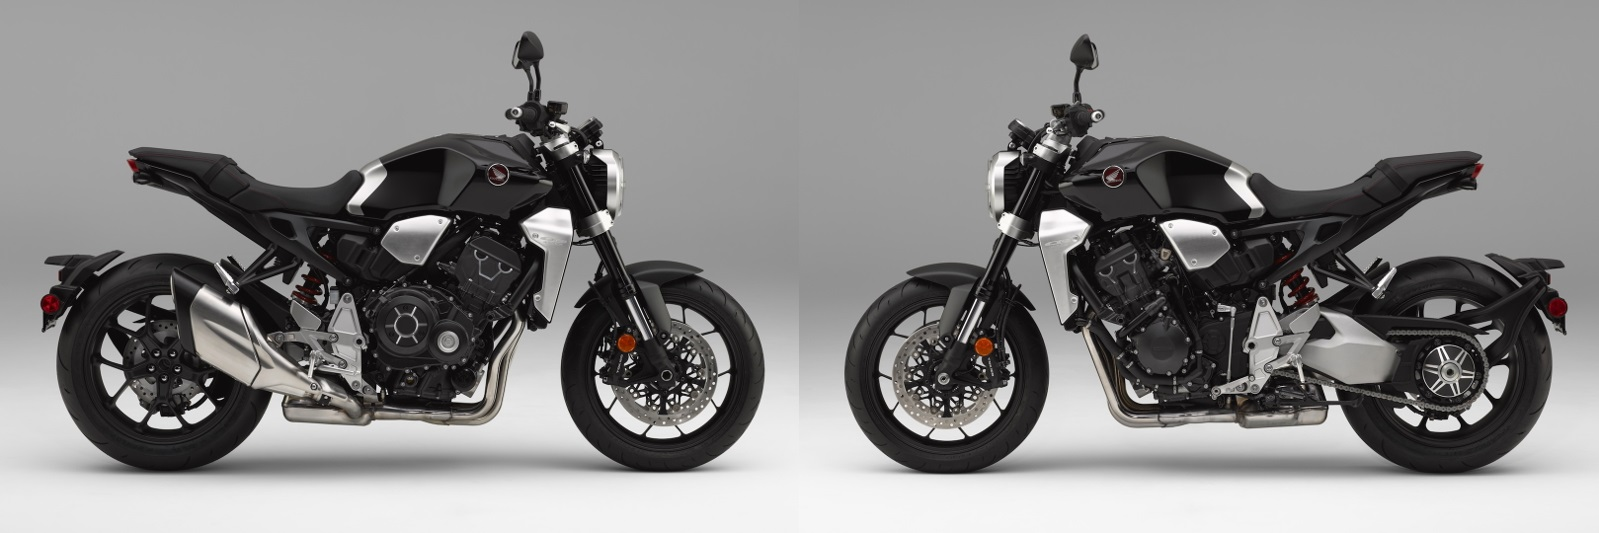 Honda CB1000R 2018 Neo Sports Café Right side and Left Side - BT